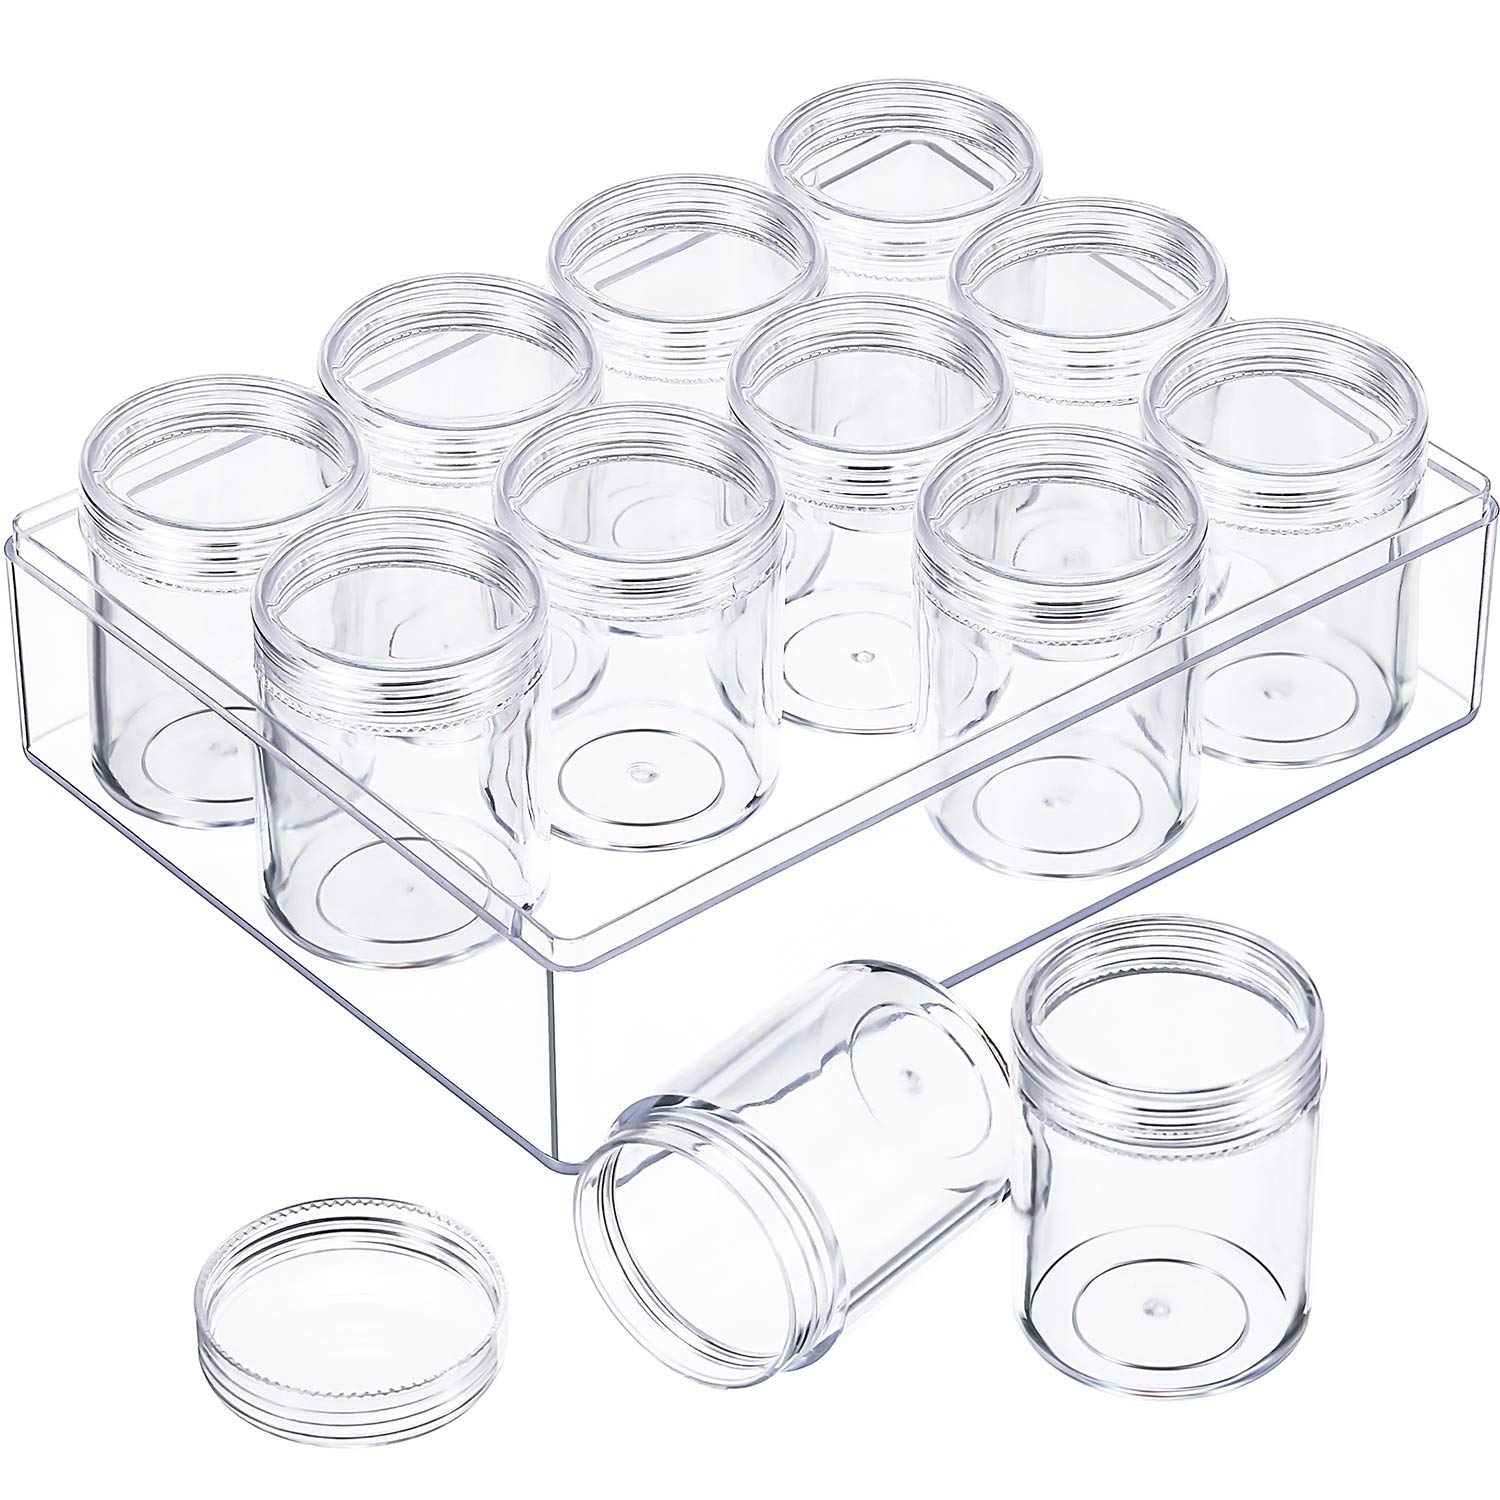 Blulu Clear Bead Organizer Bead Storage Containers Set with 12 Boxes, 1.9 x 1.5 Inches